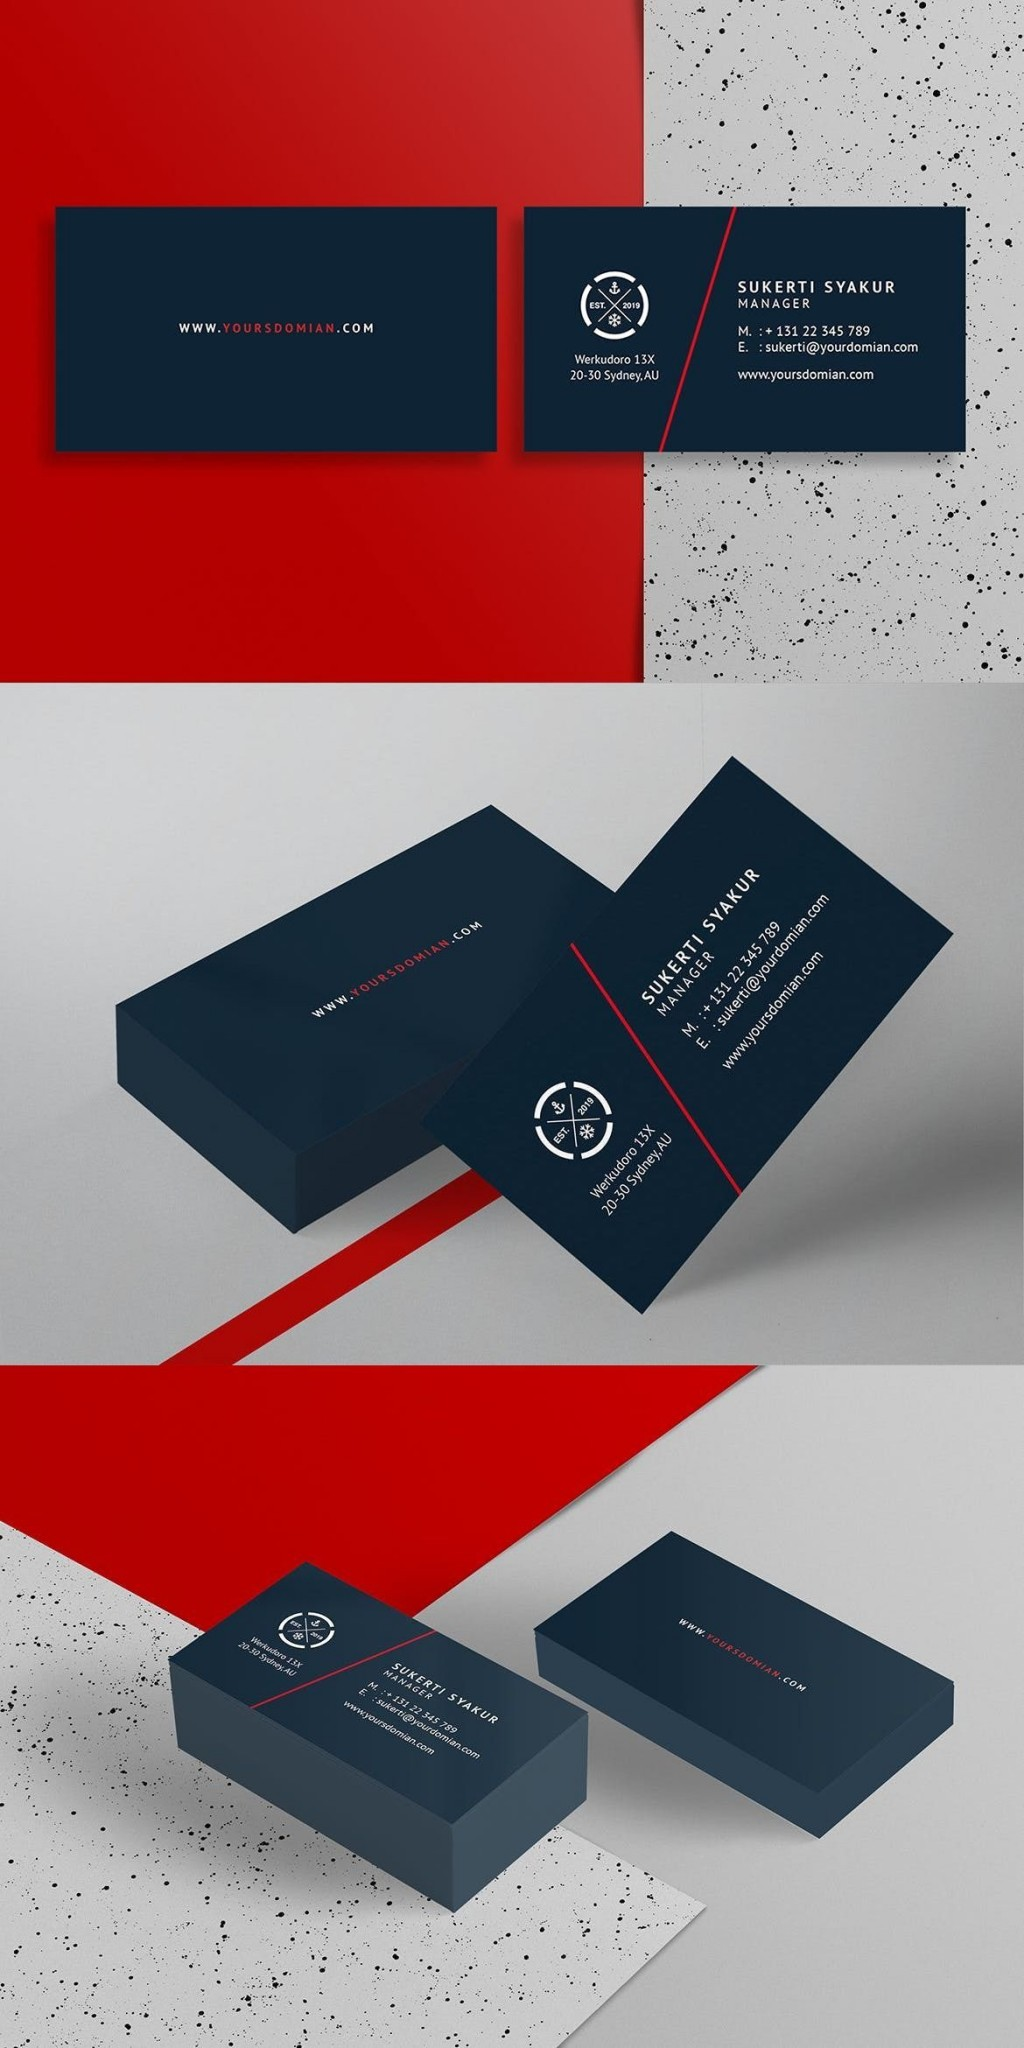 000 Remarkable Busines Card Layout Indesign High Definition  Size Template Free Download Cs6Large